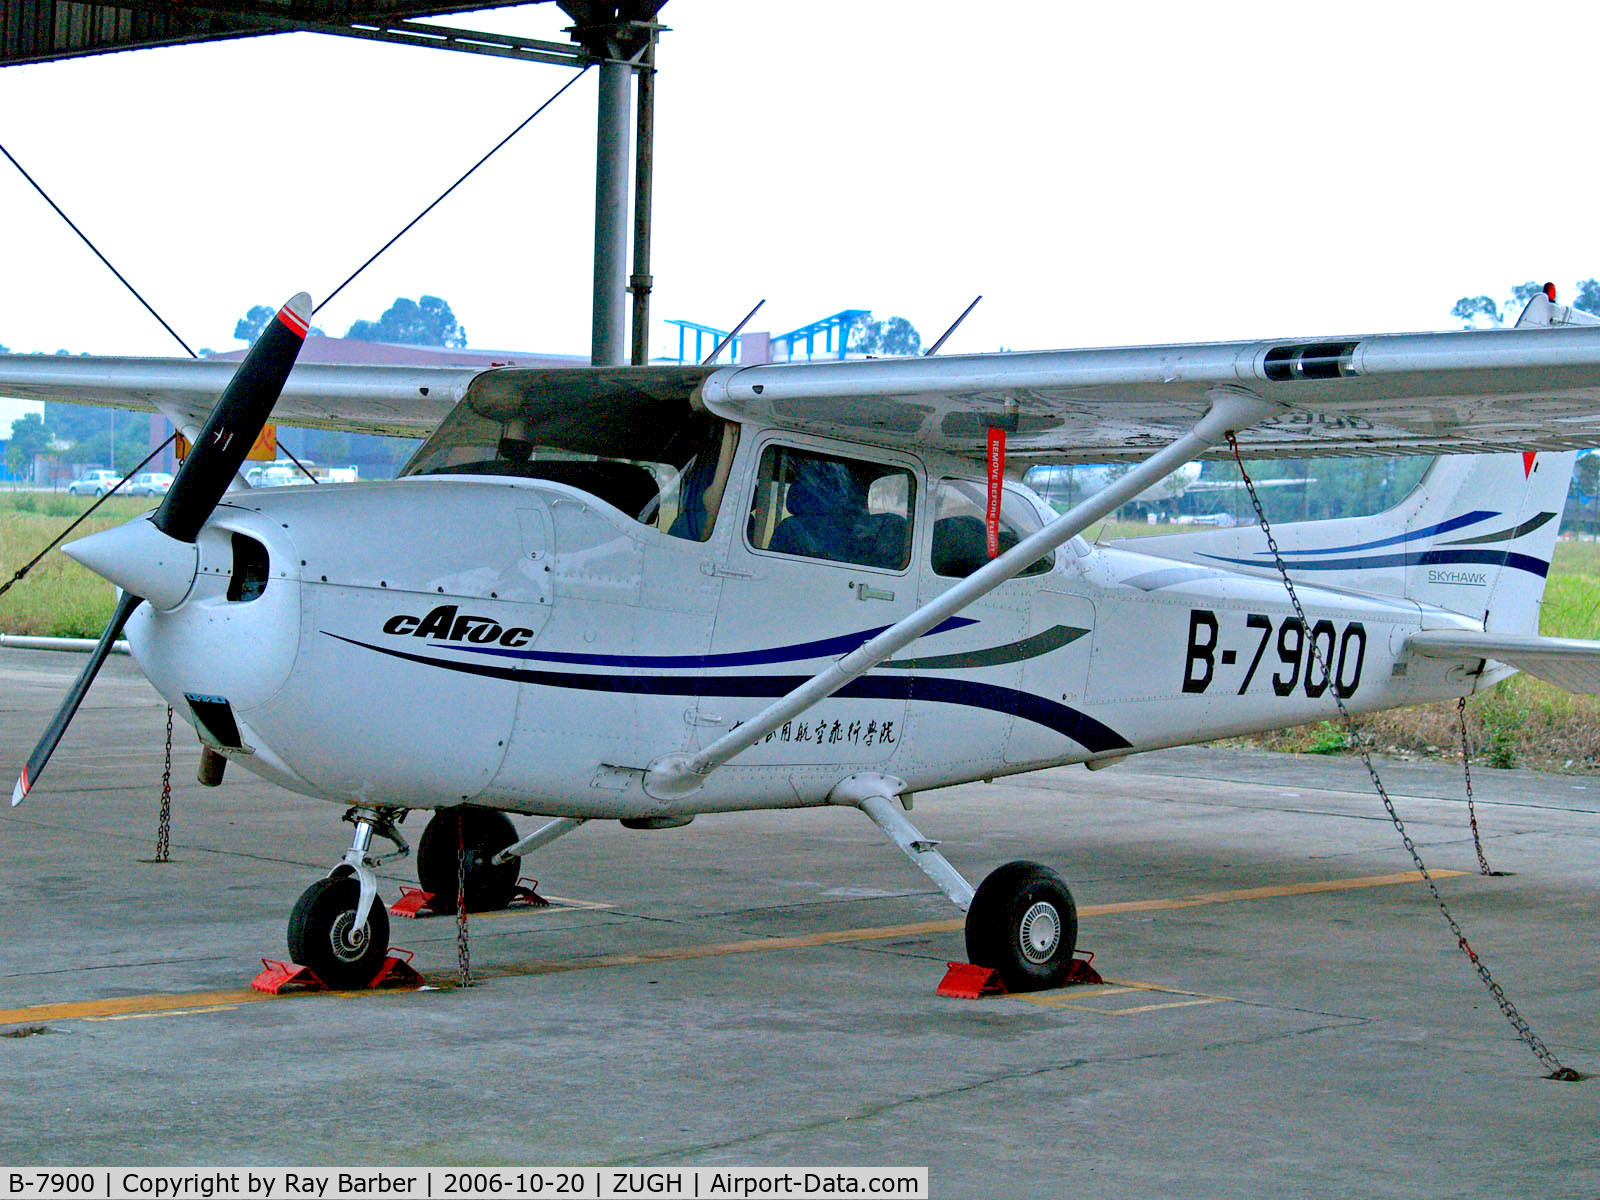 B-7900, 2006 Cessna 172R Skyhawk C/N 17281292, B-7900   Cessna 172R Skyhawk [172-81292] (Civil Aviation Flight University China) Gaunghan~B 20/10/2006